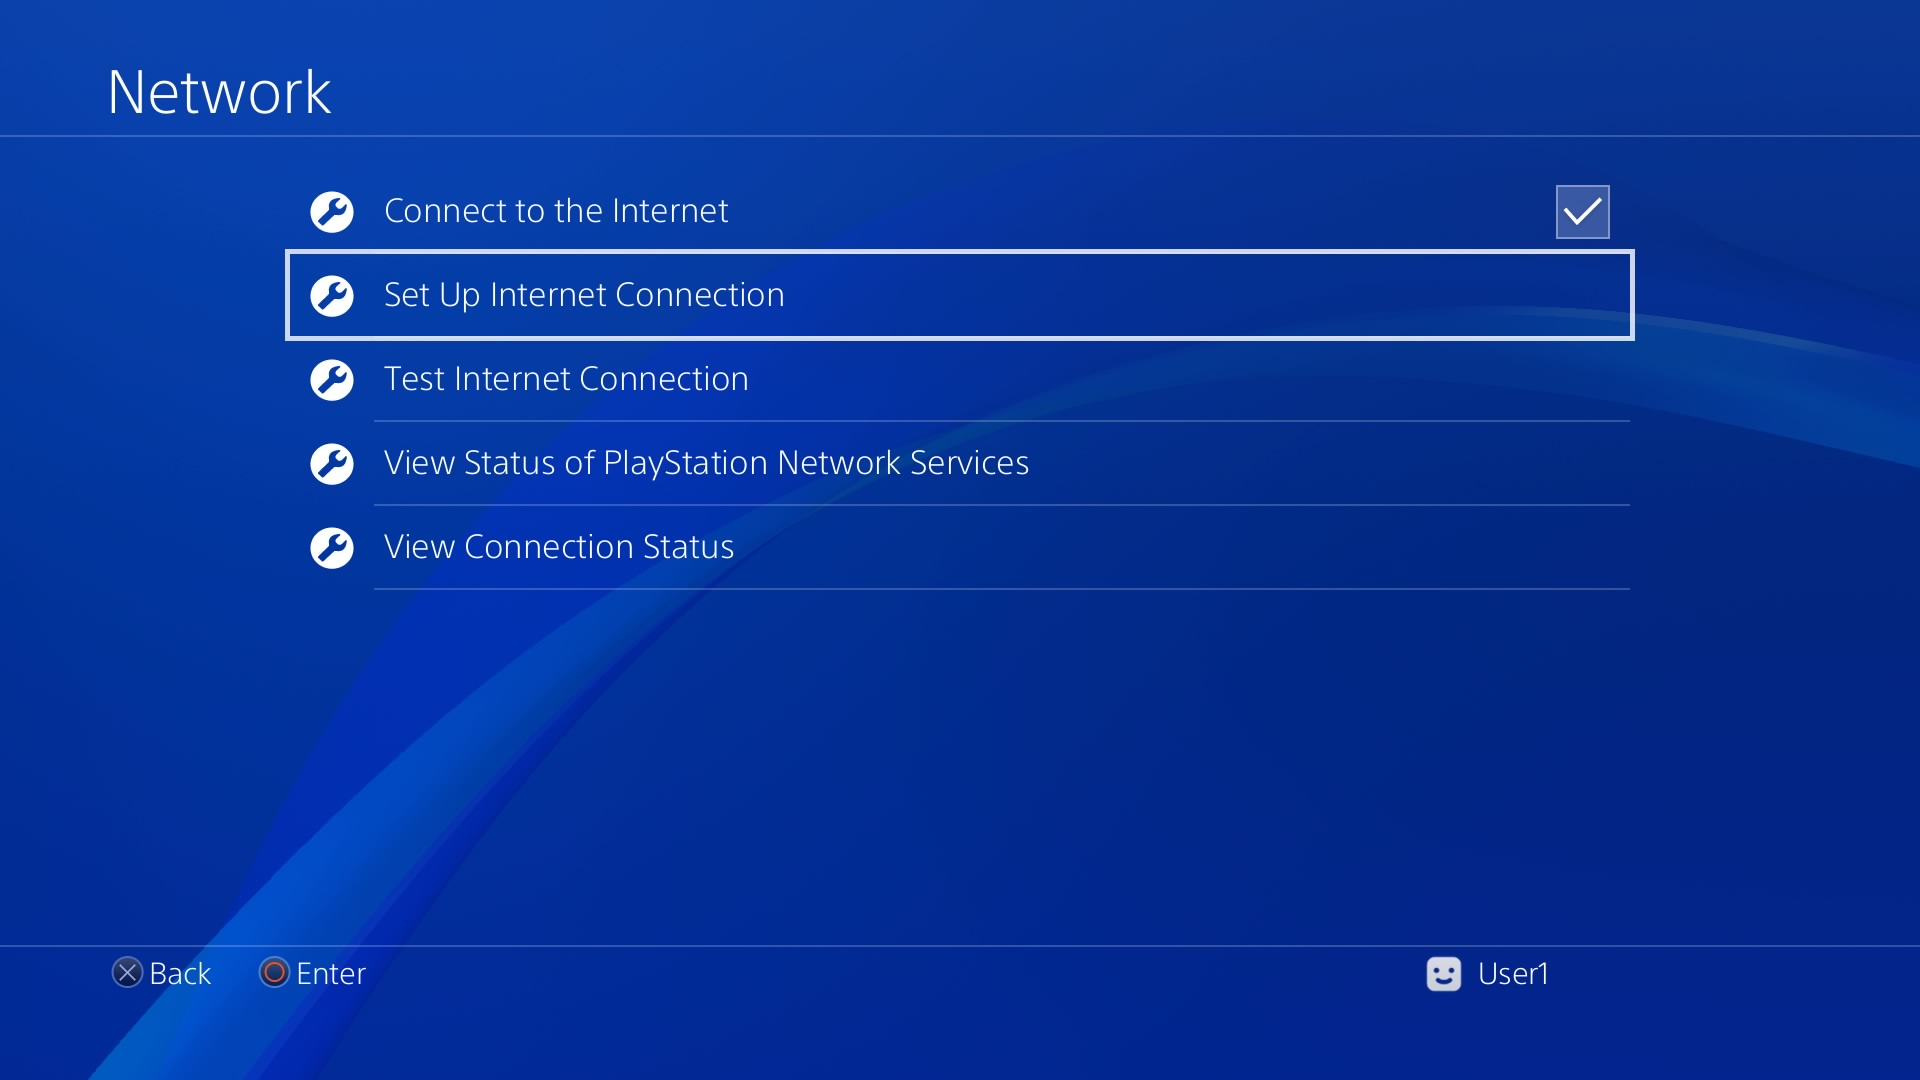 how to connect to wifi on ps4 with password